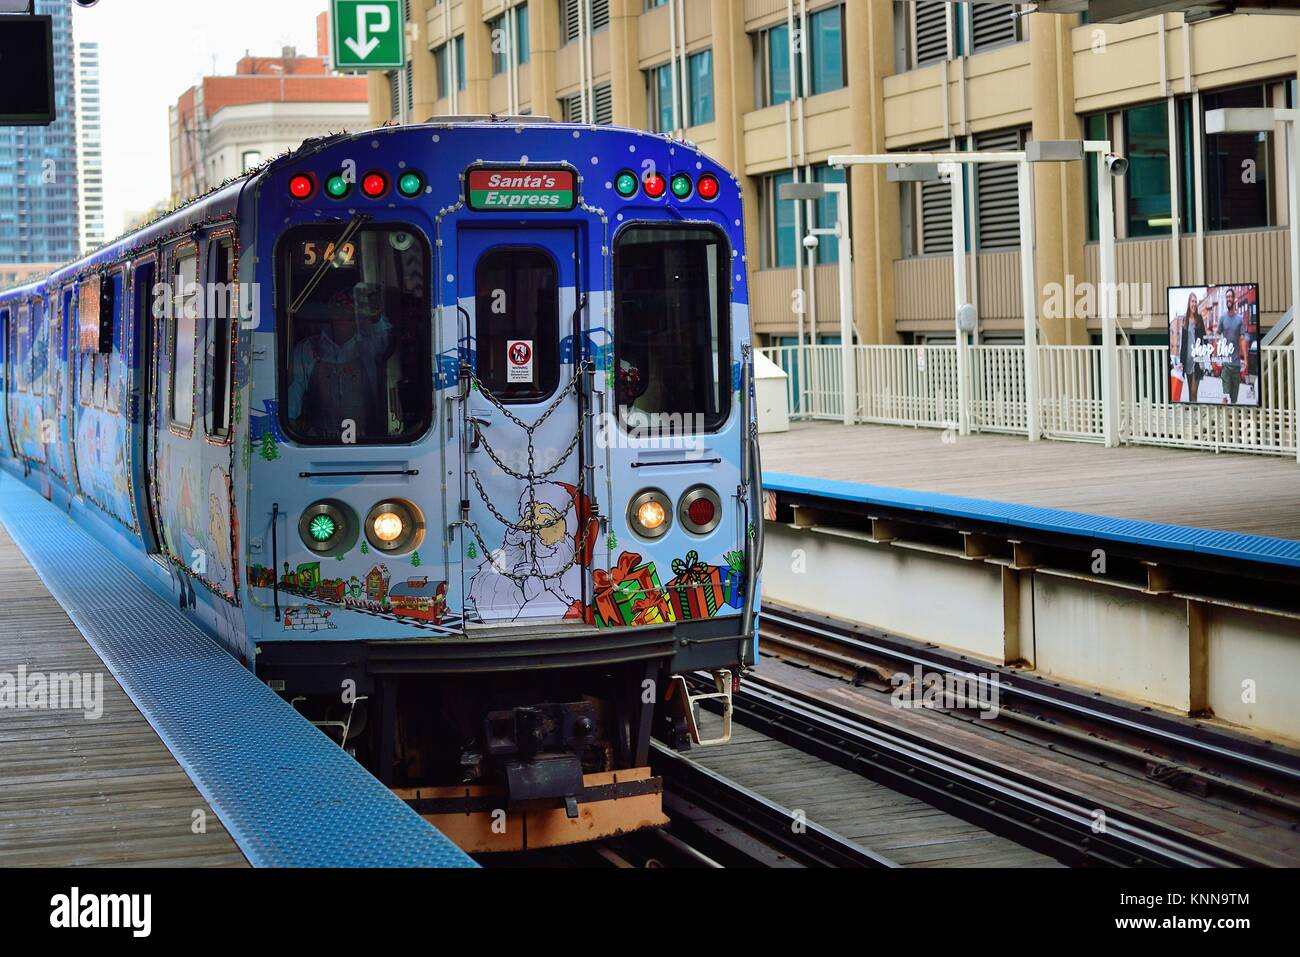 the cta in chicago operates special holiday trains in advance of christmas annually over its entire